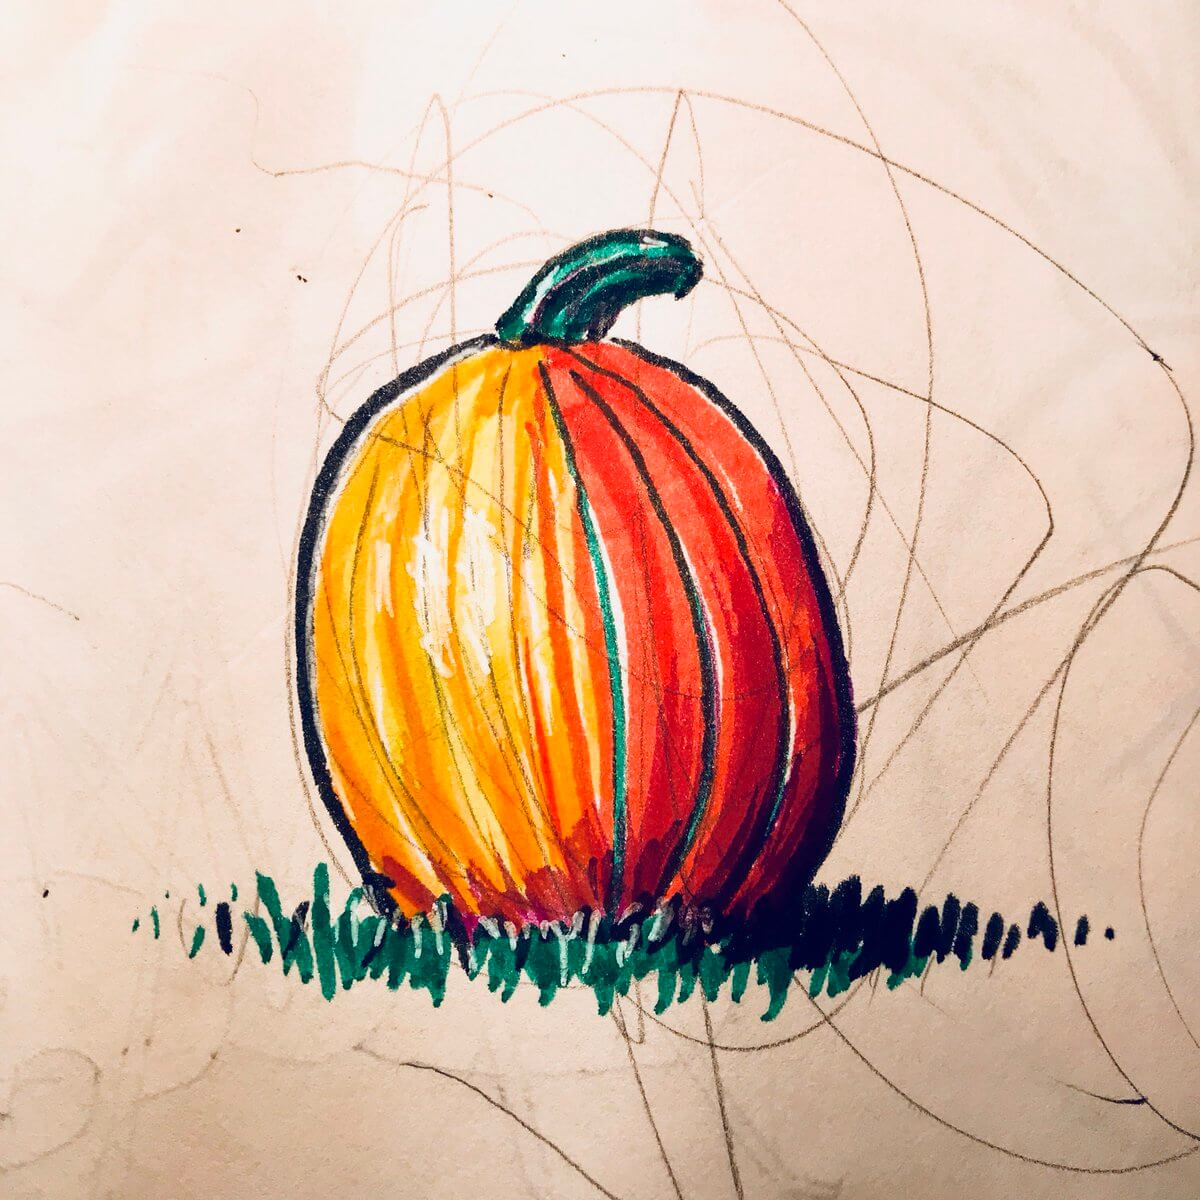 A pumpkin illustration